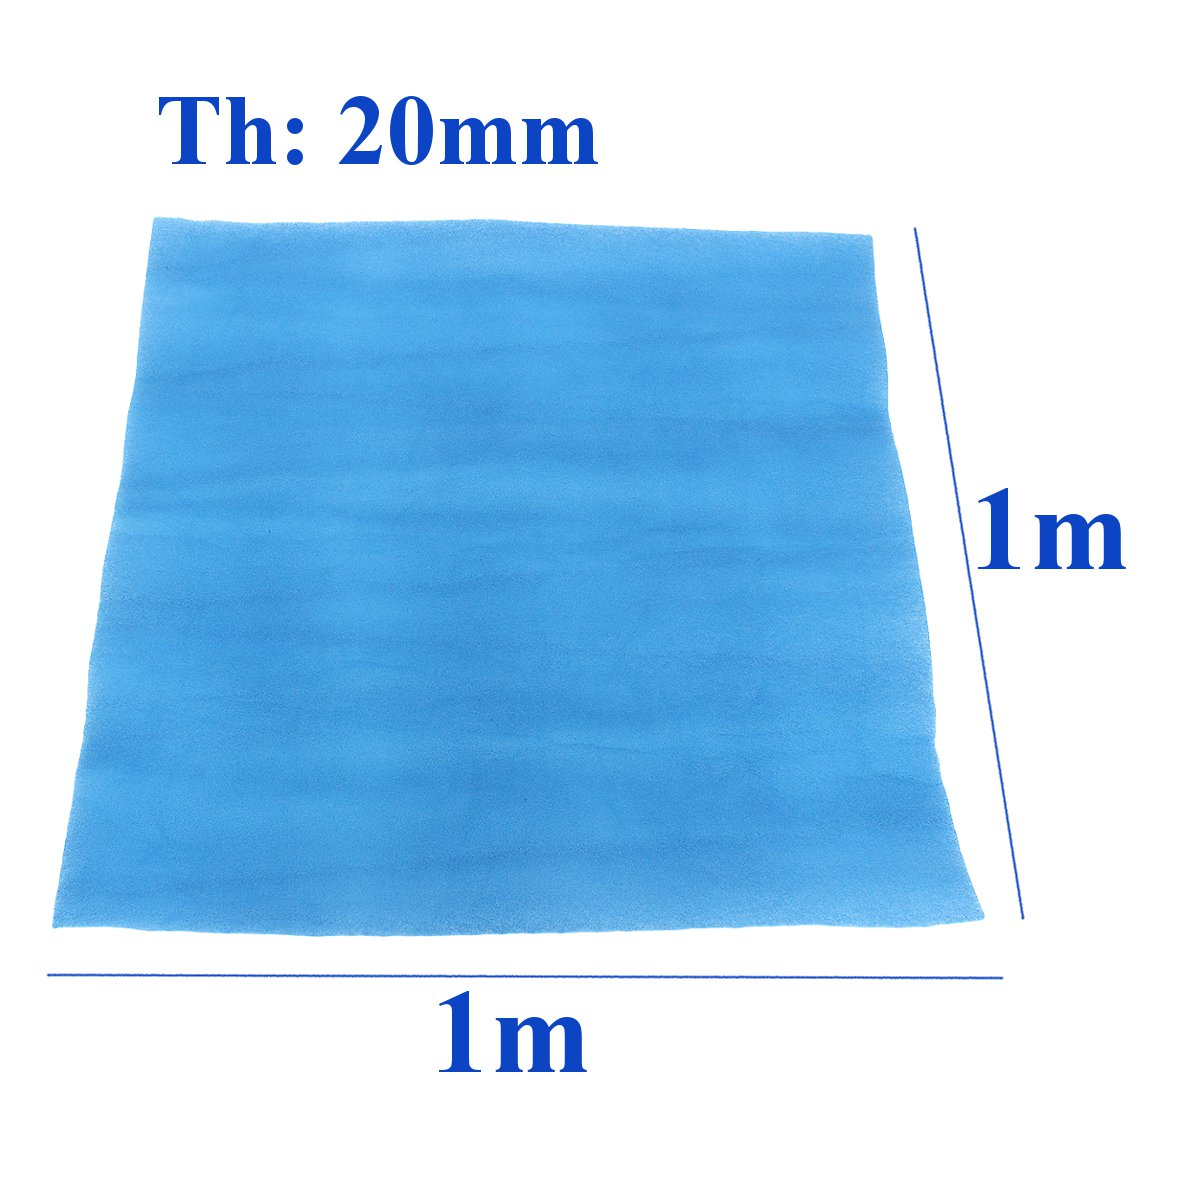 1x1m Booth Air Filter Material Paint Shop Car Spray Atomize Thickness 20mm